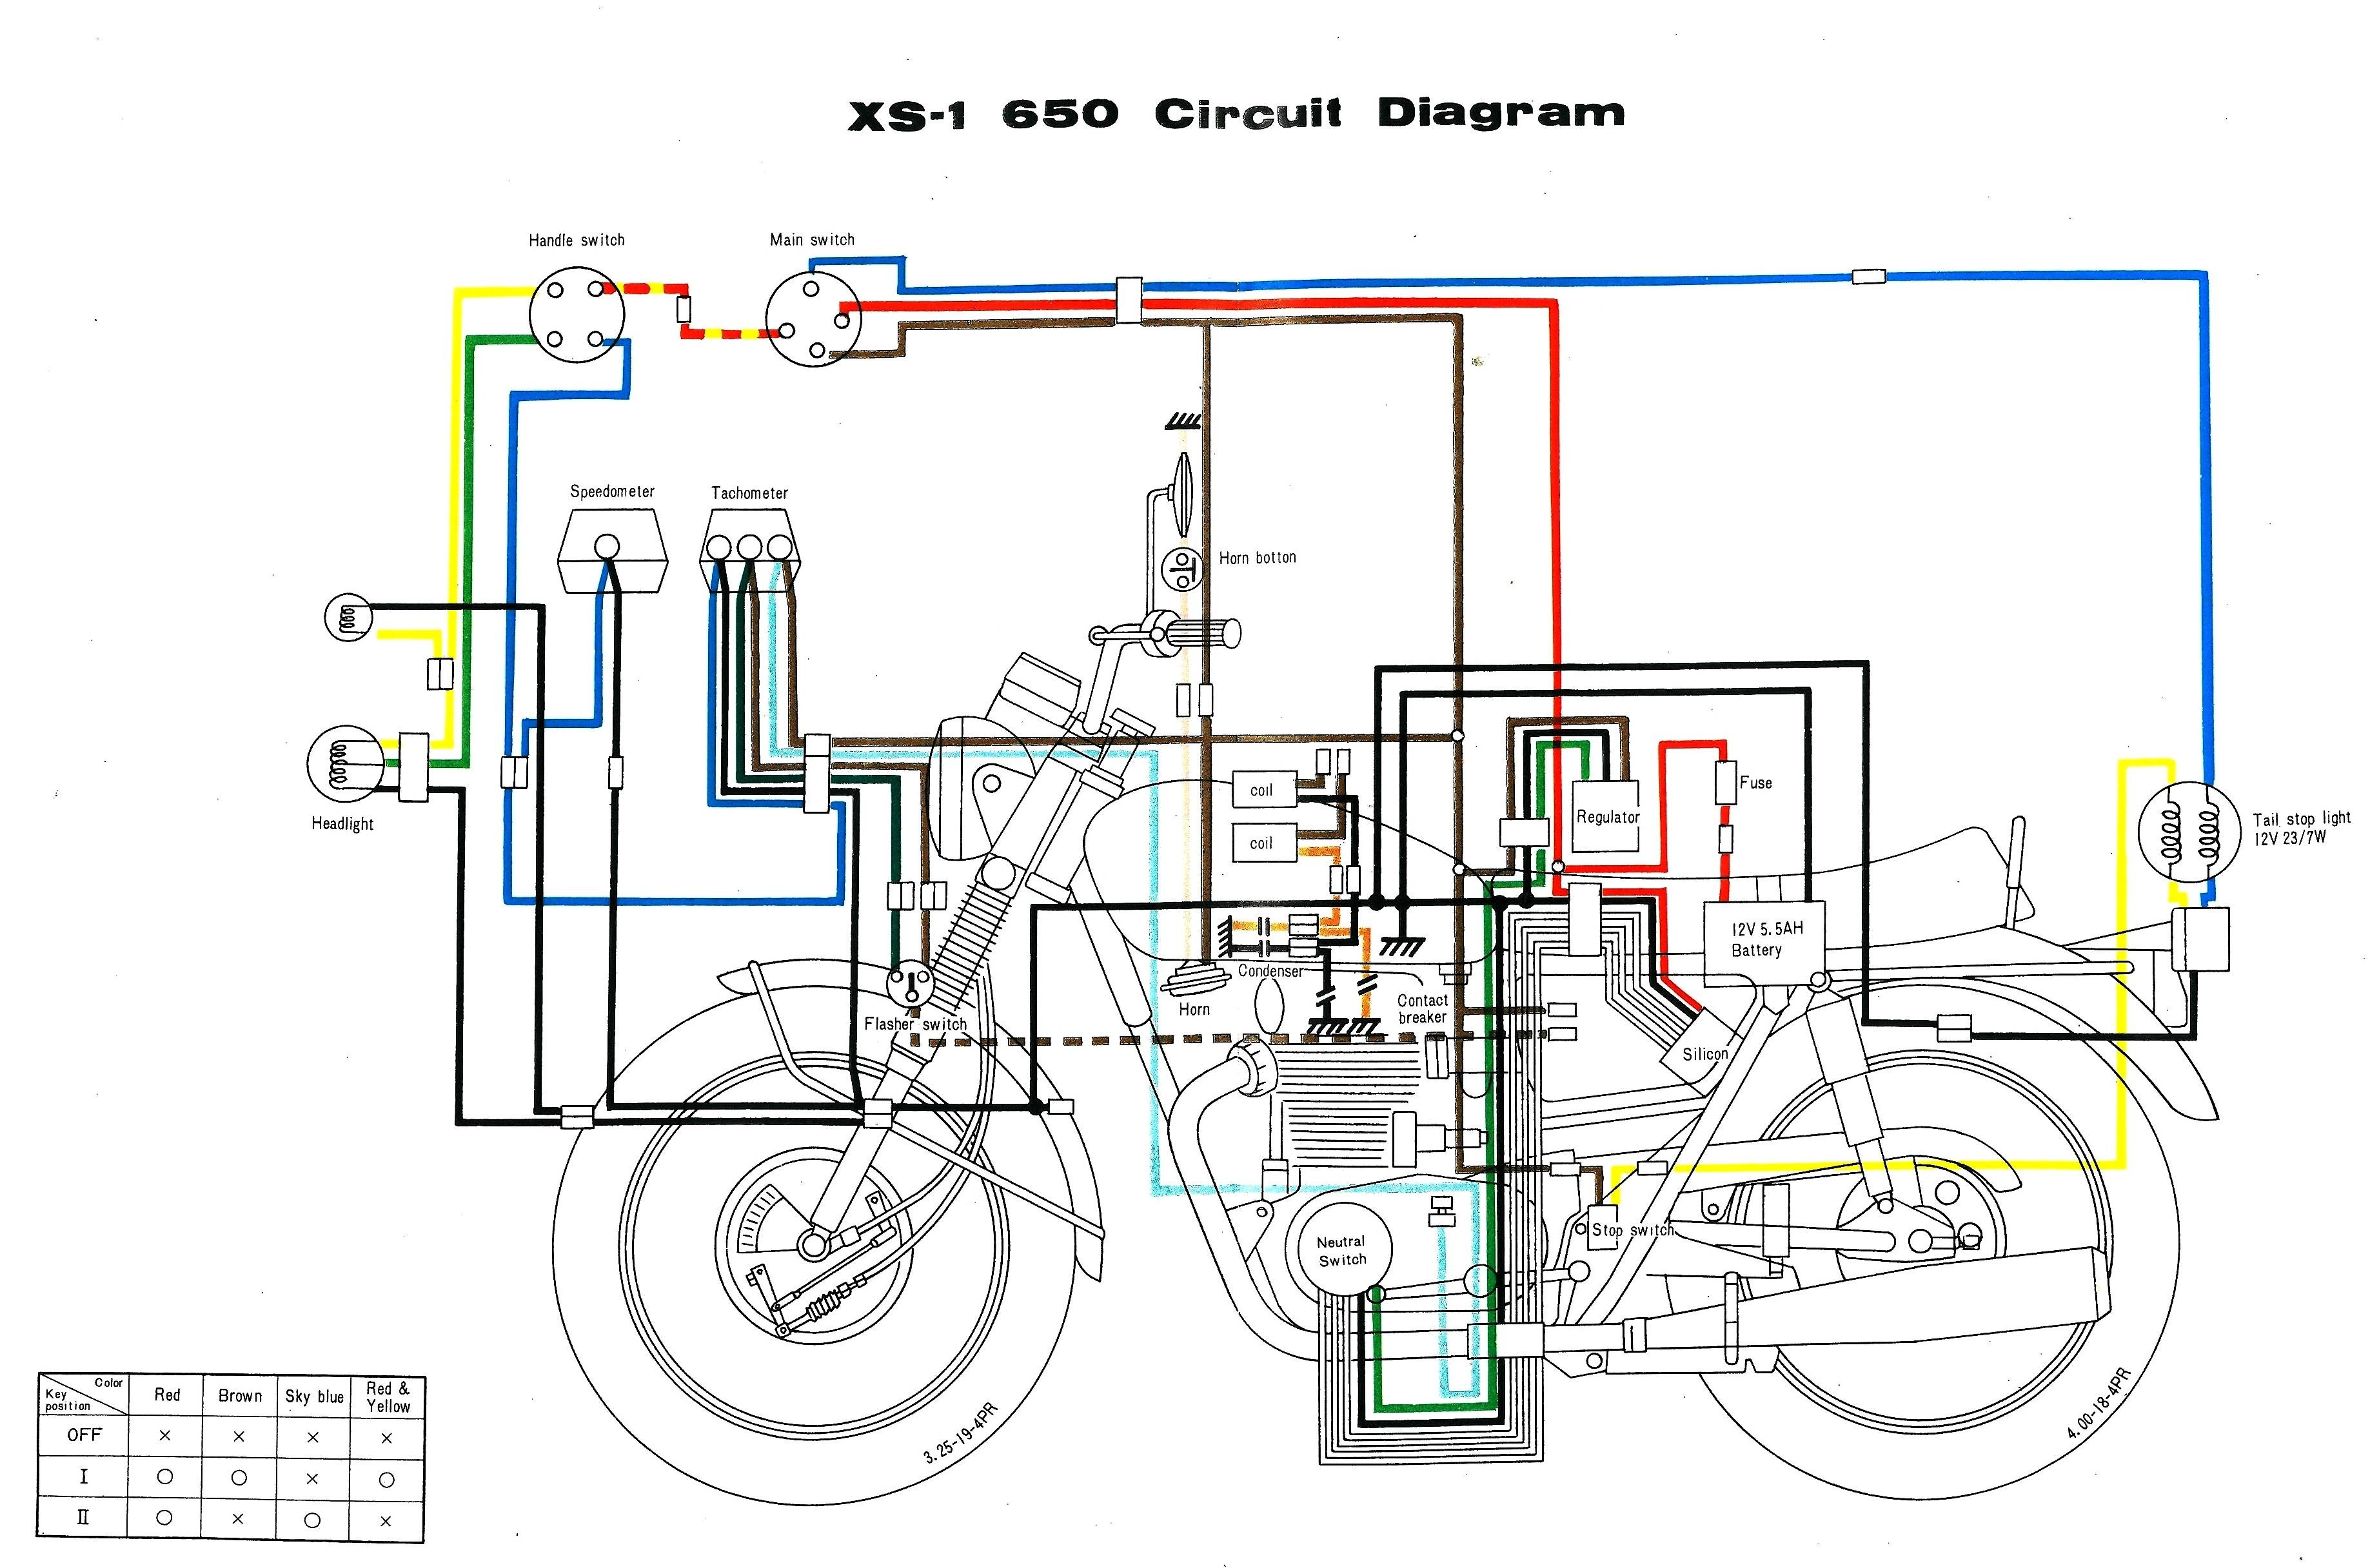 Control Engineering Block Diagram Wiring What S A Schematic Pared to Other Diagrams Of Control Engineering Block Diagram